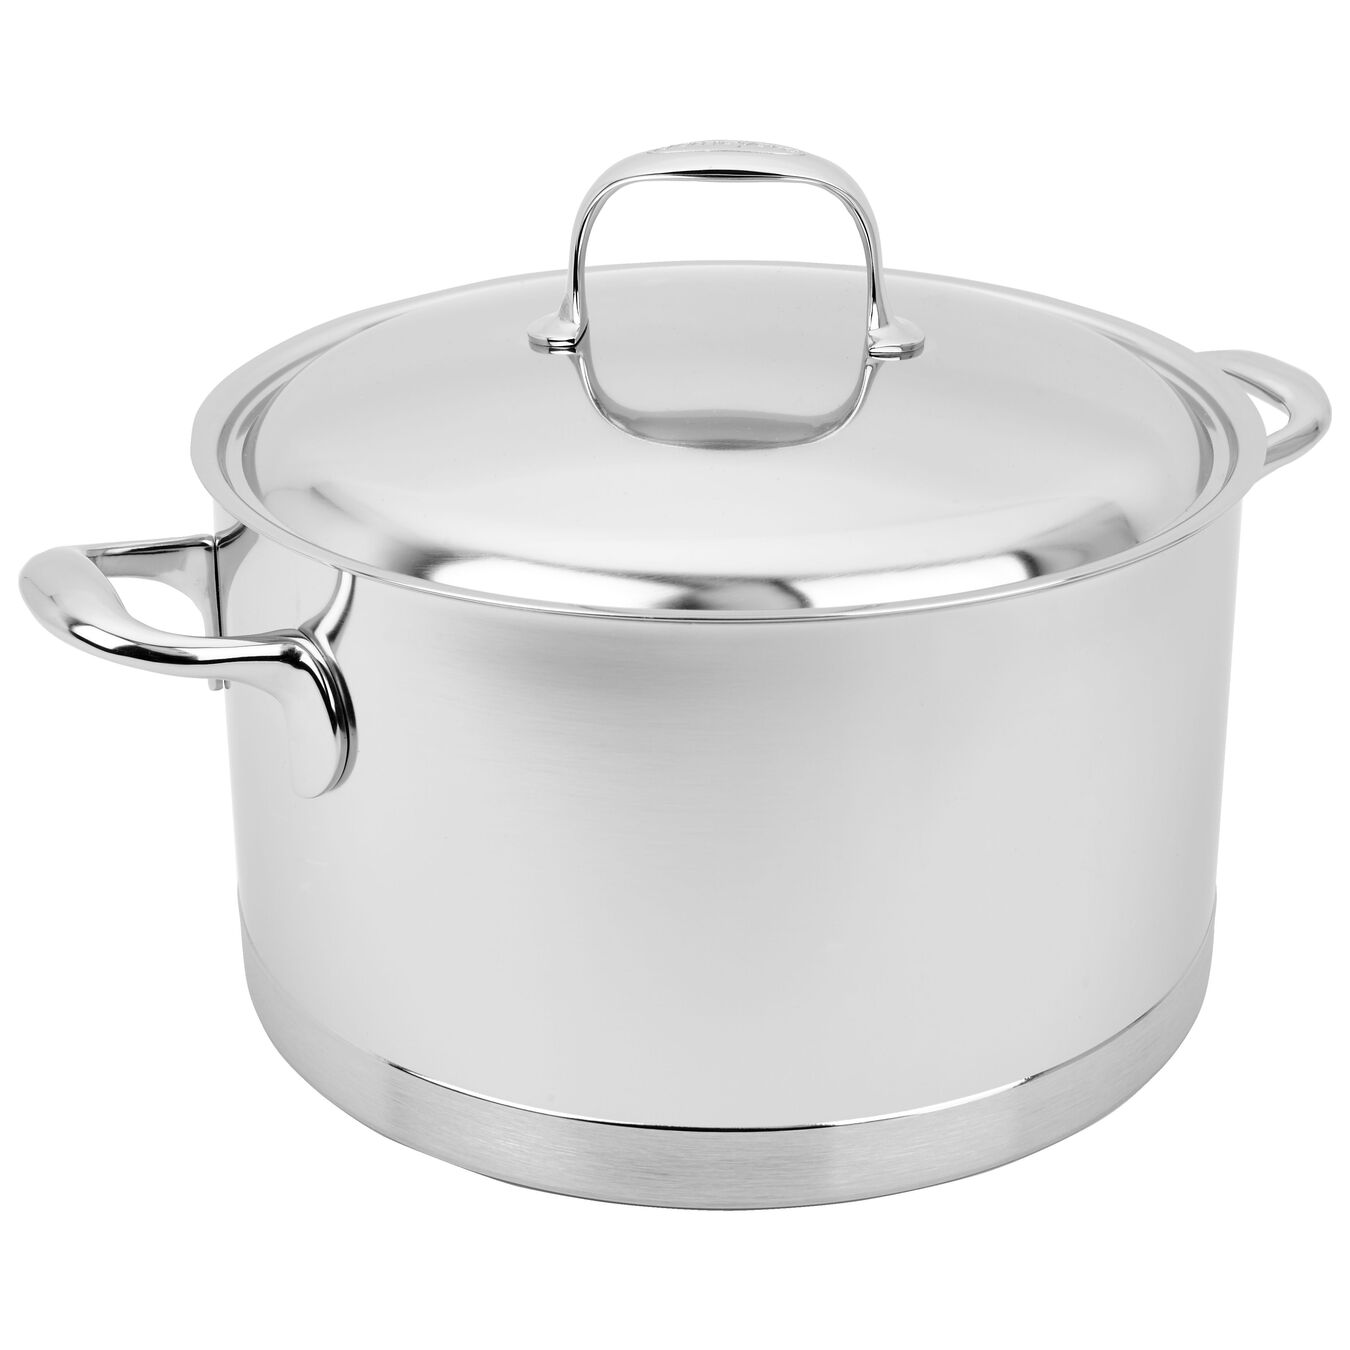 8,5 l 18/10 Stainless Steel Casserole with lid,,large 2